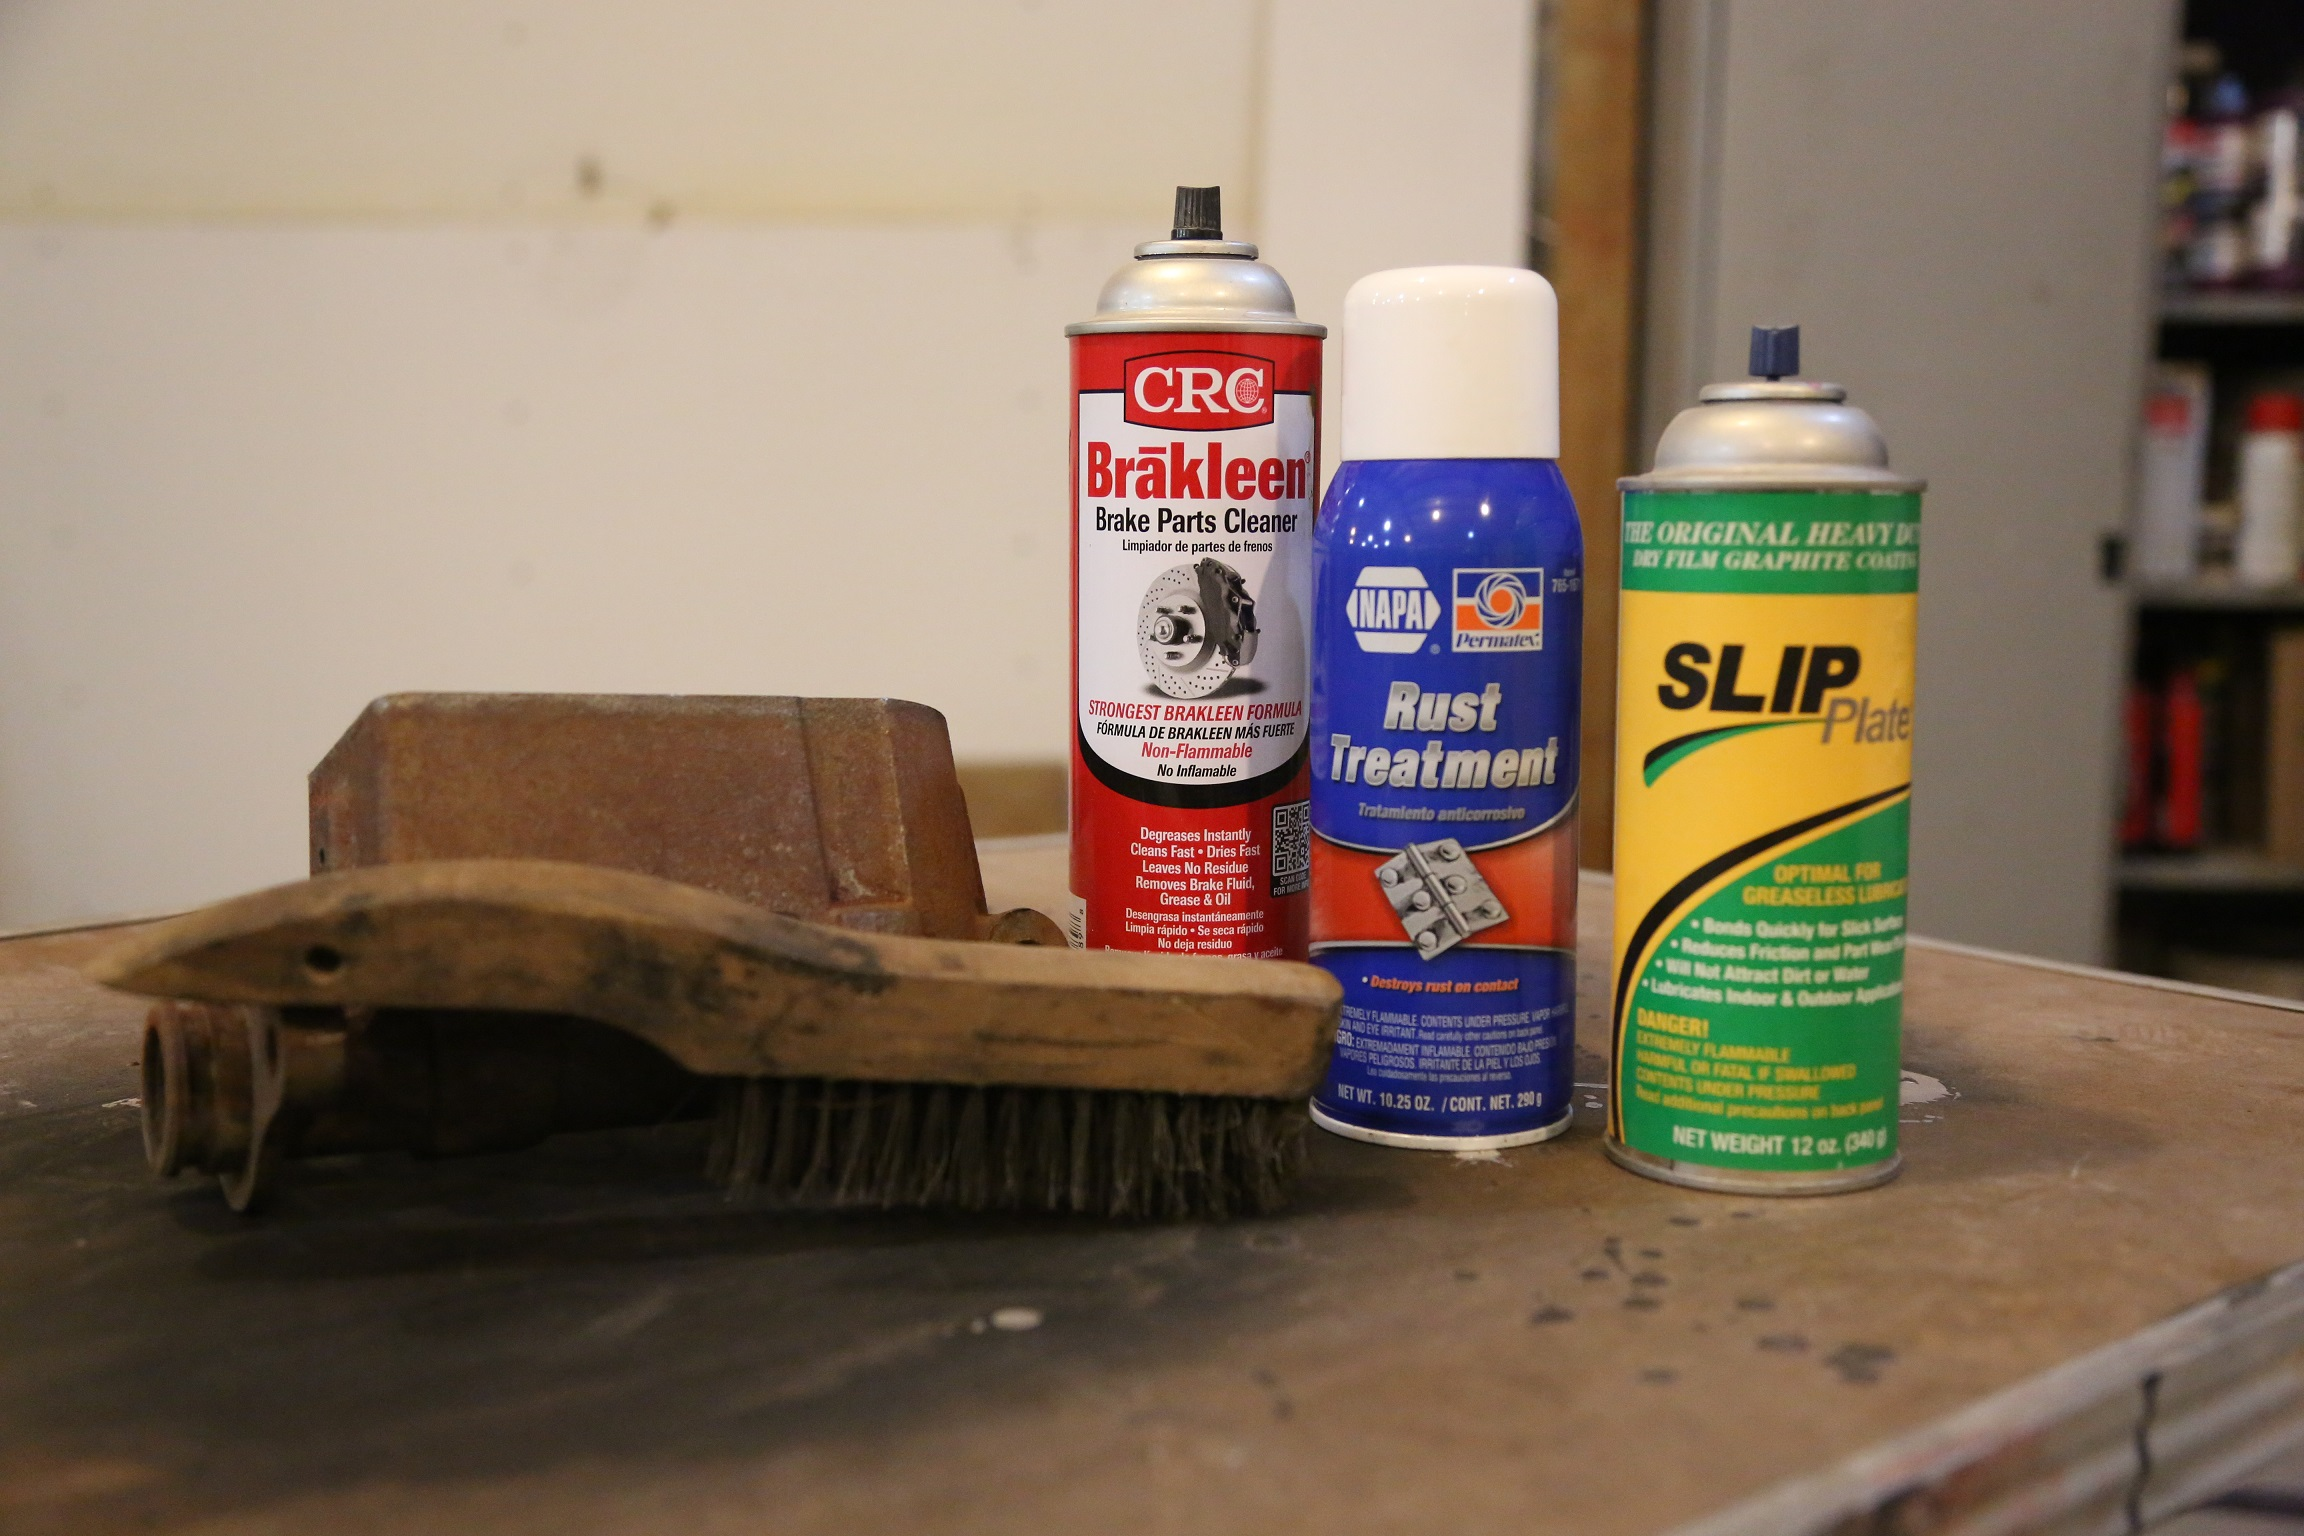 To remove and treat the master cylinder, we need a few products- NAPA rust treatment, brake cleaner, and to protect the finish--Slip Plate.